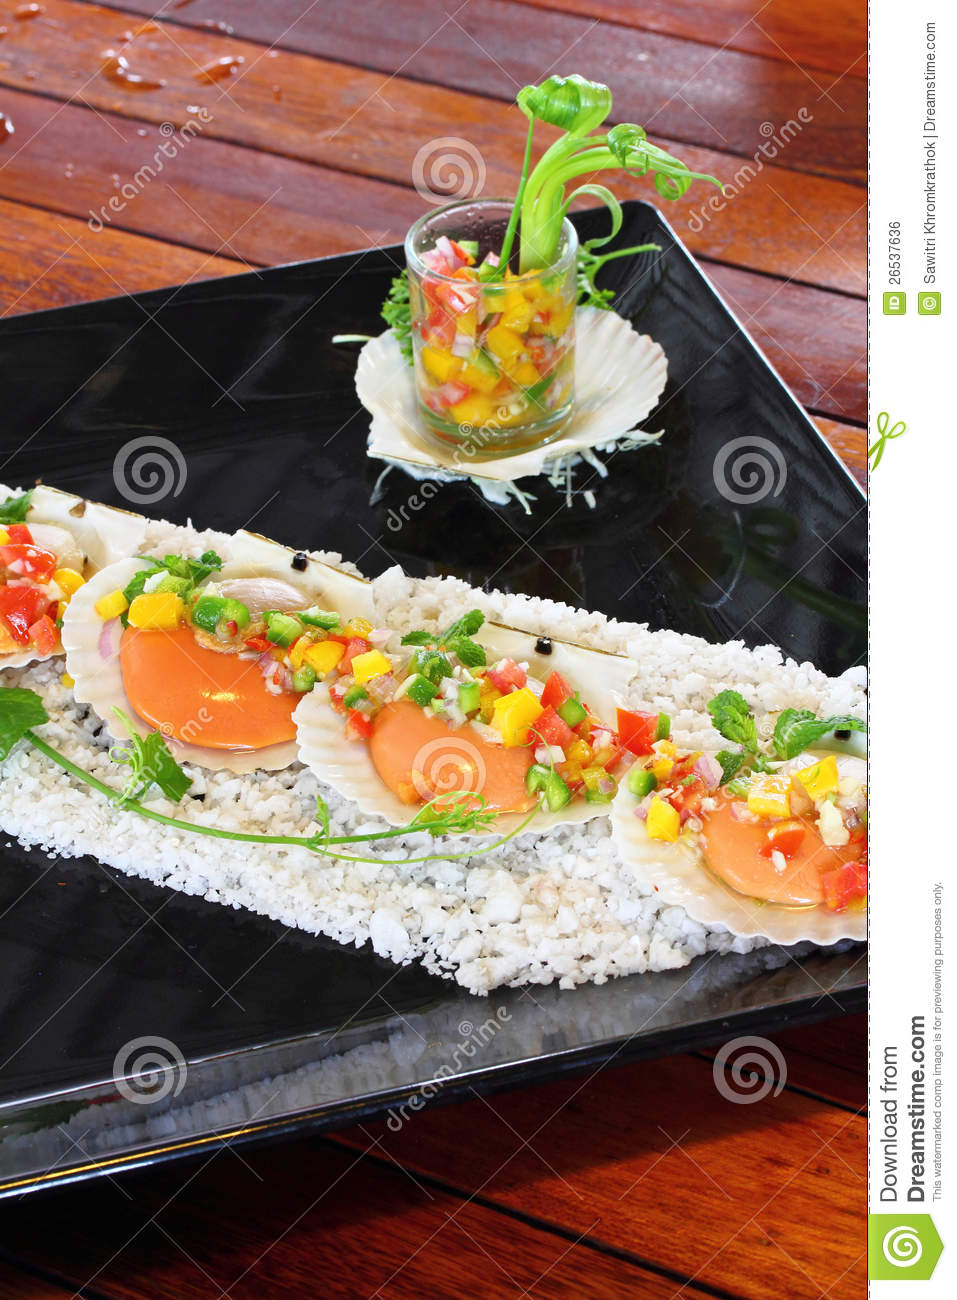 Seared Scallops With Tropical Salsa Royalty Free Stock Image - Image ...